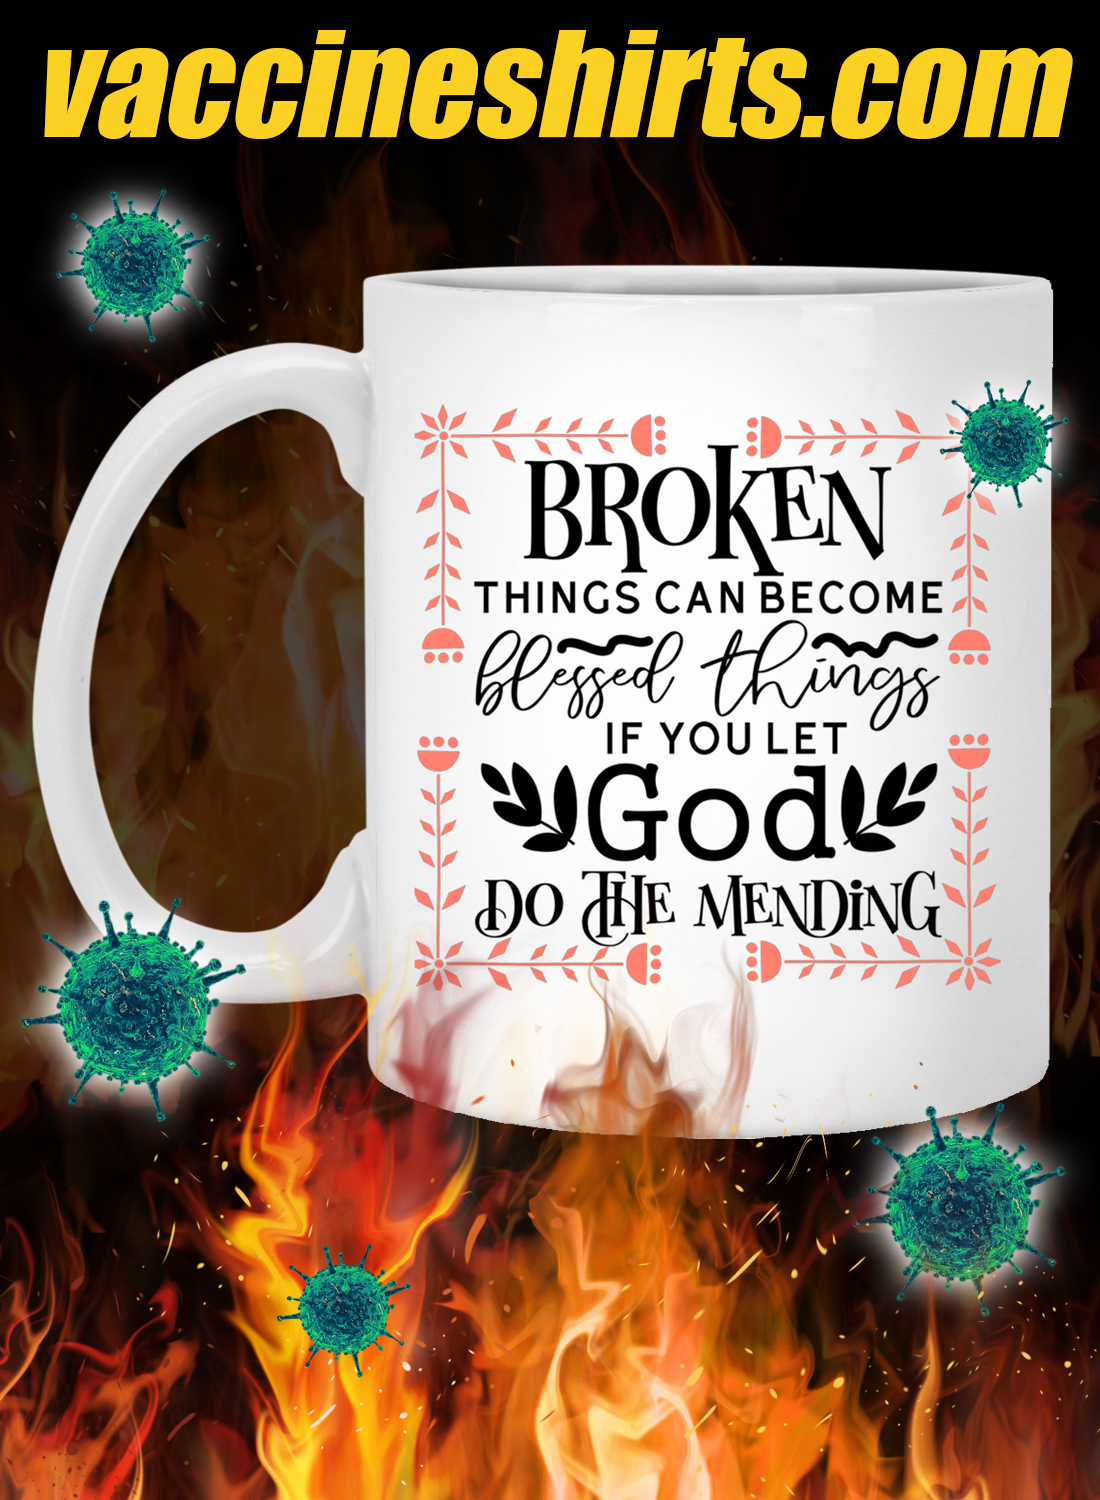 Broken things can become blessed things mug 1